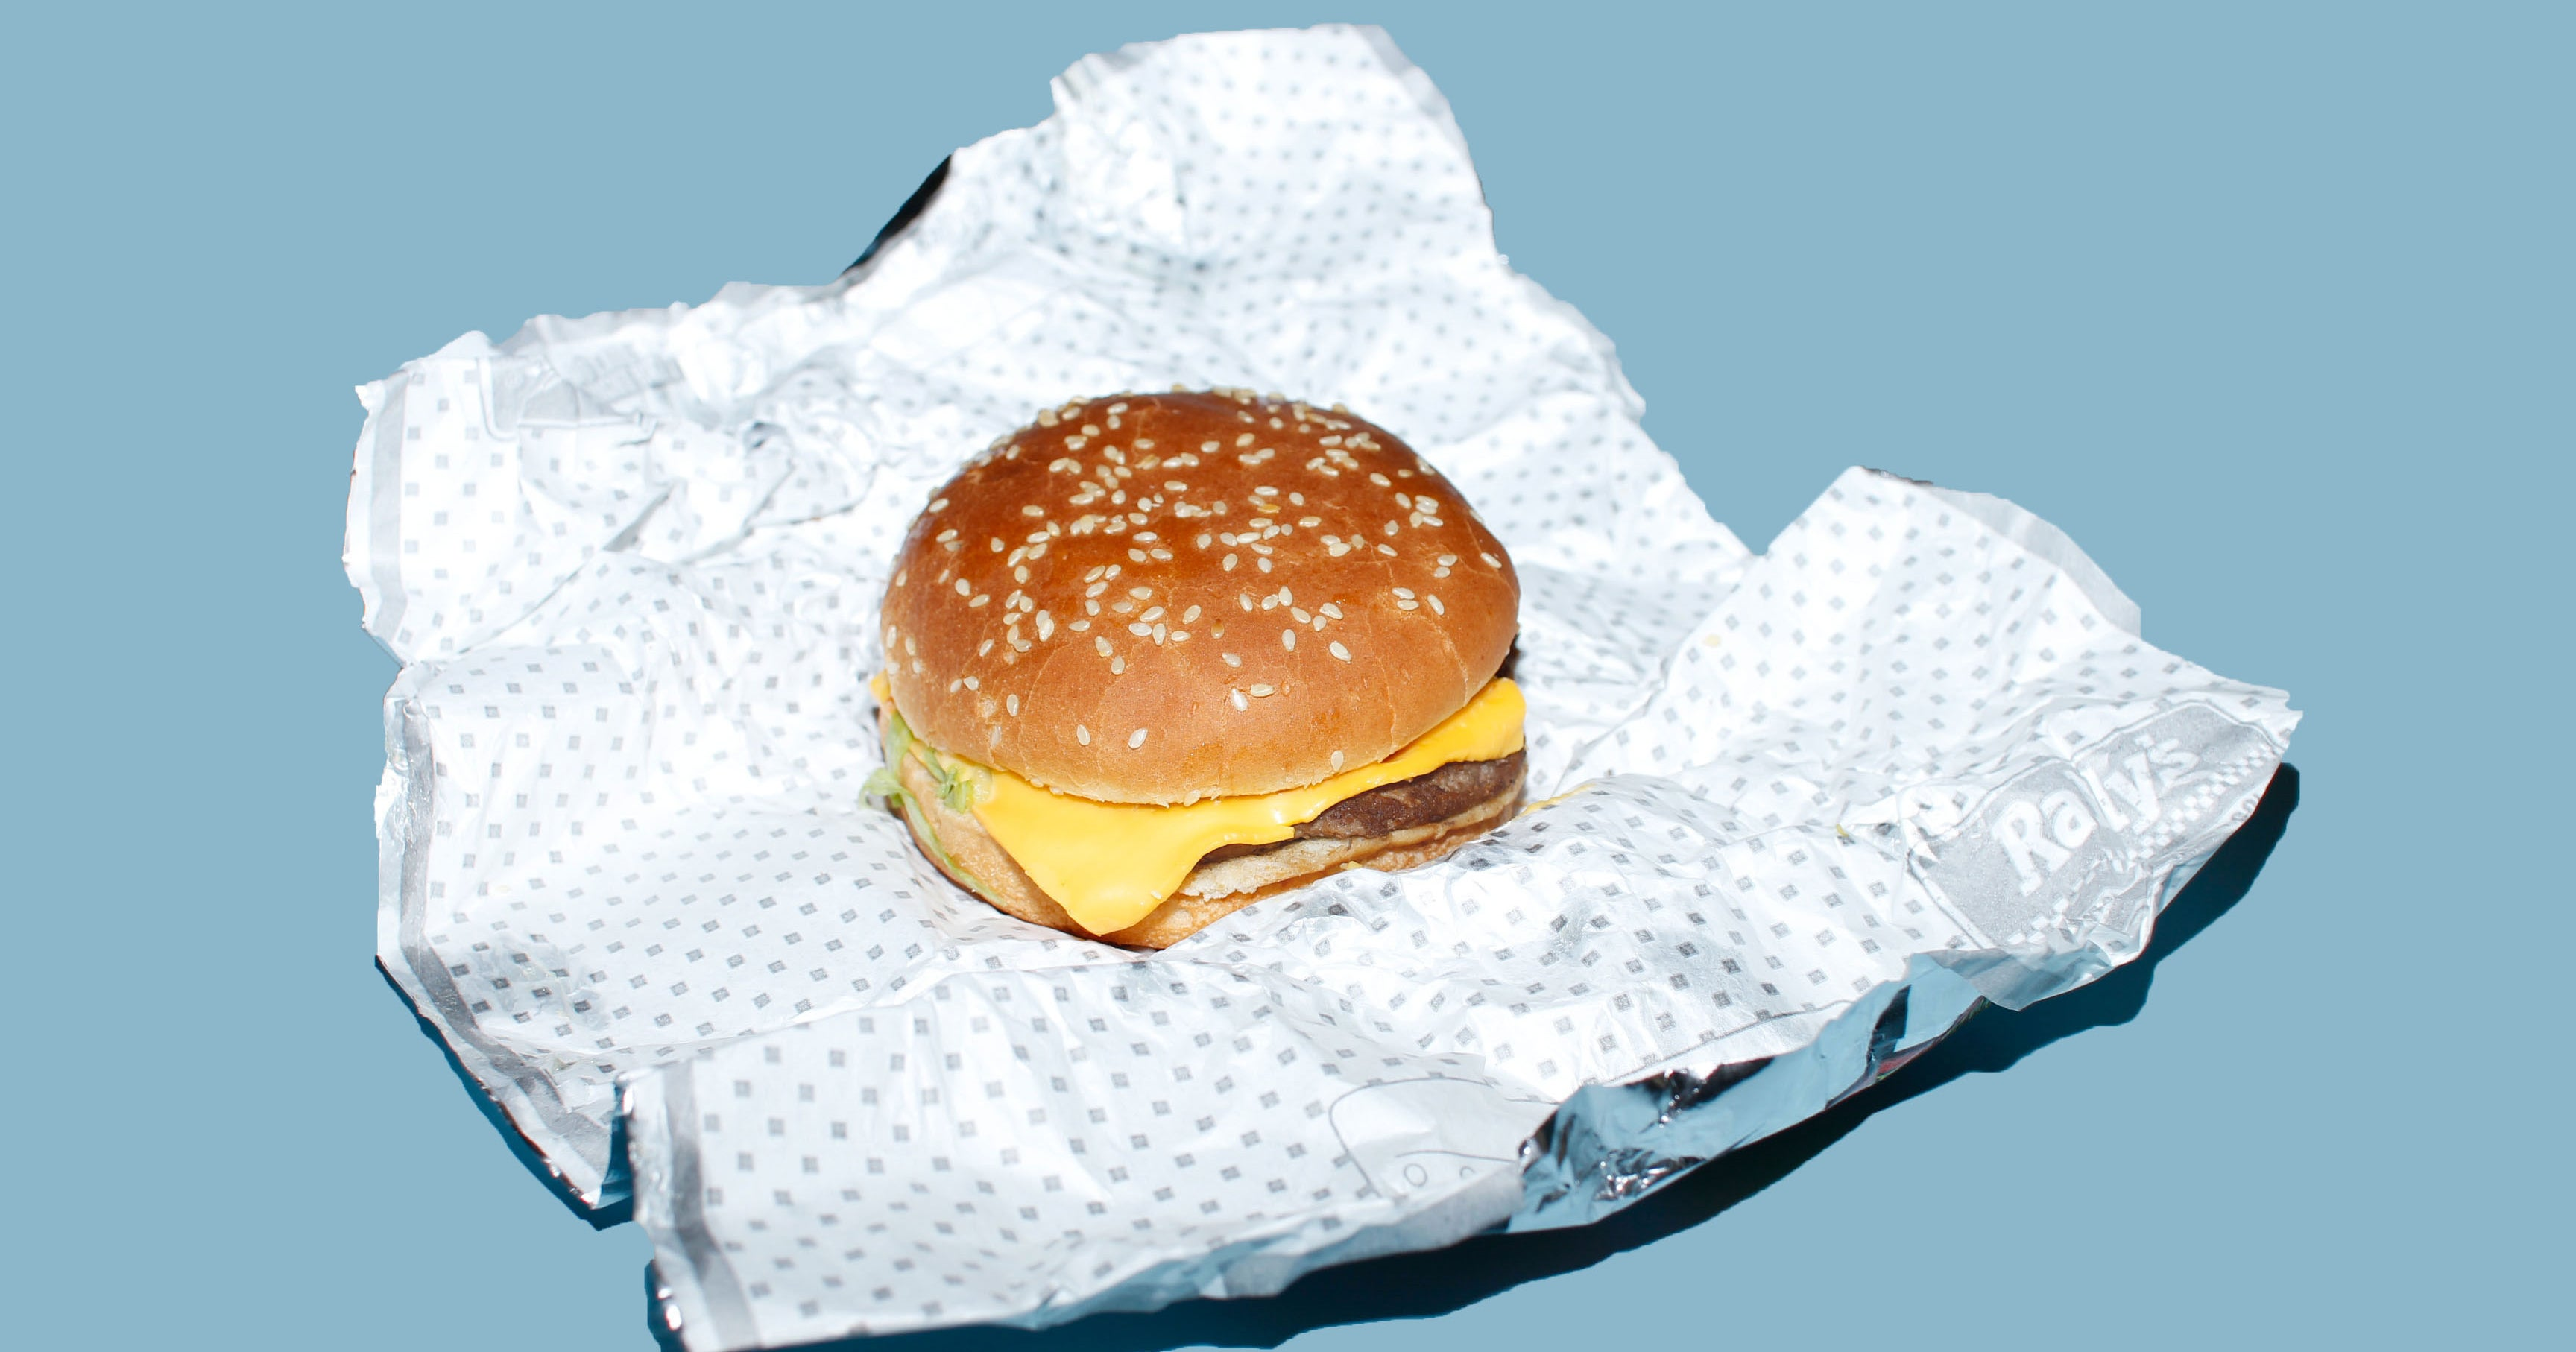 Is It 'Right' For Vegans To Eat In Fast Food Restaurants?